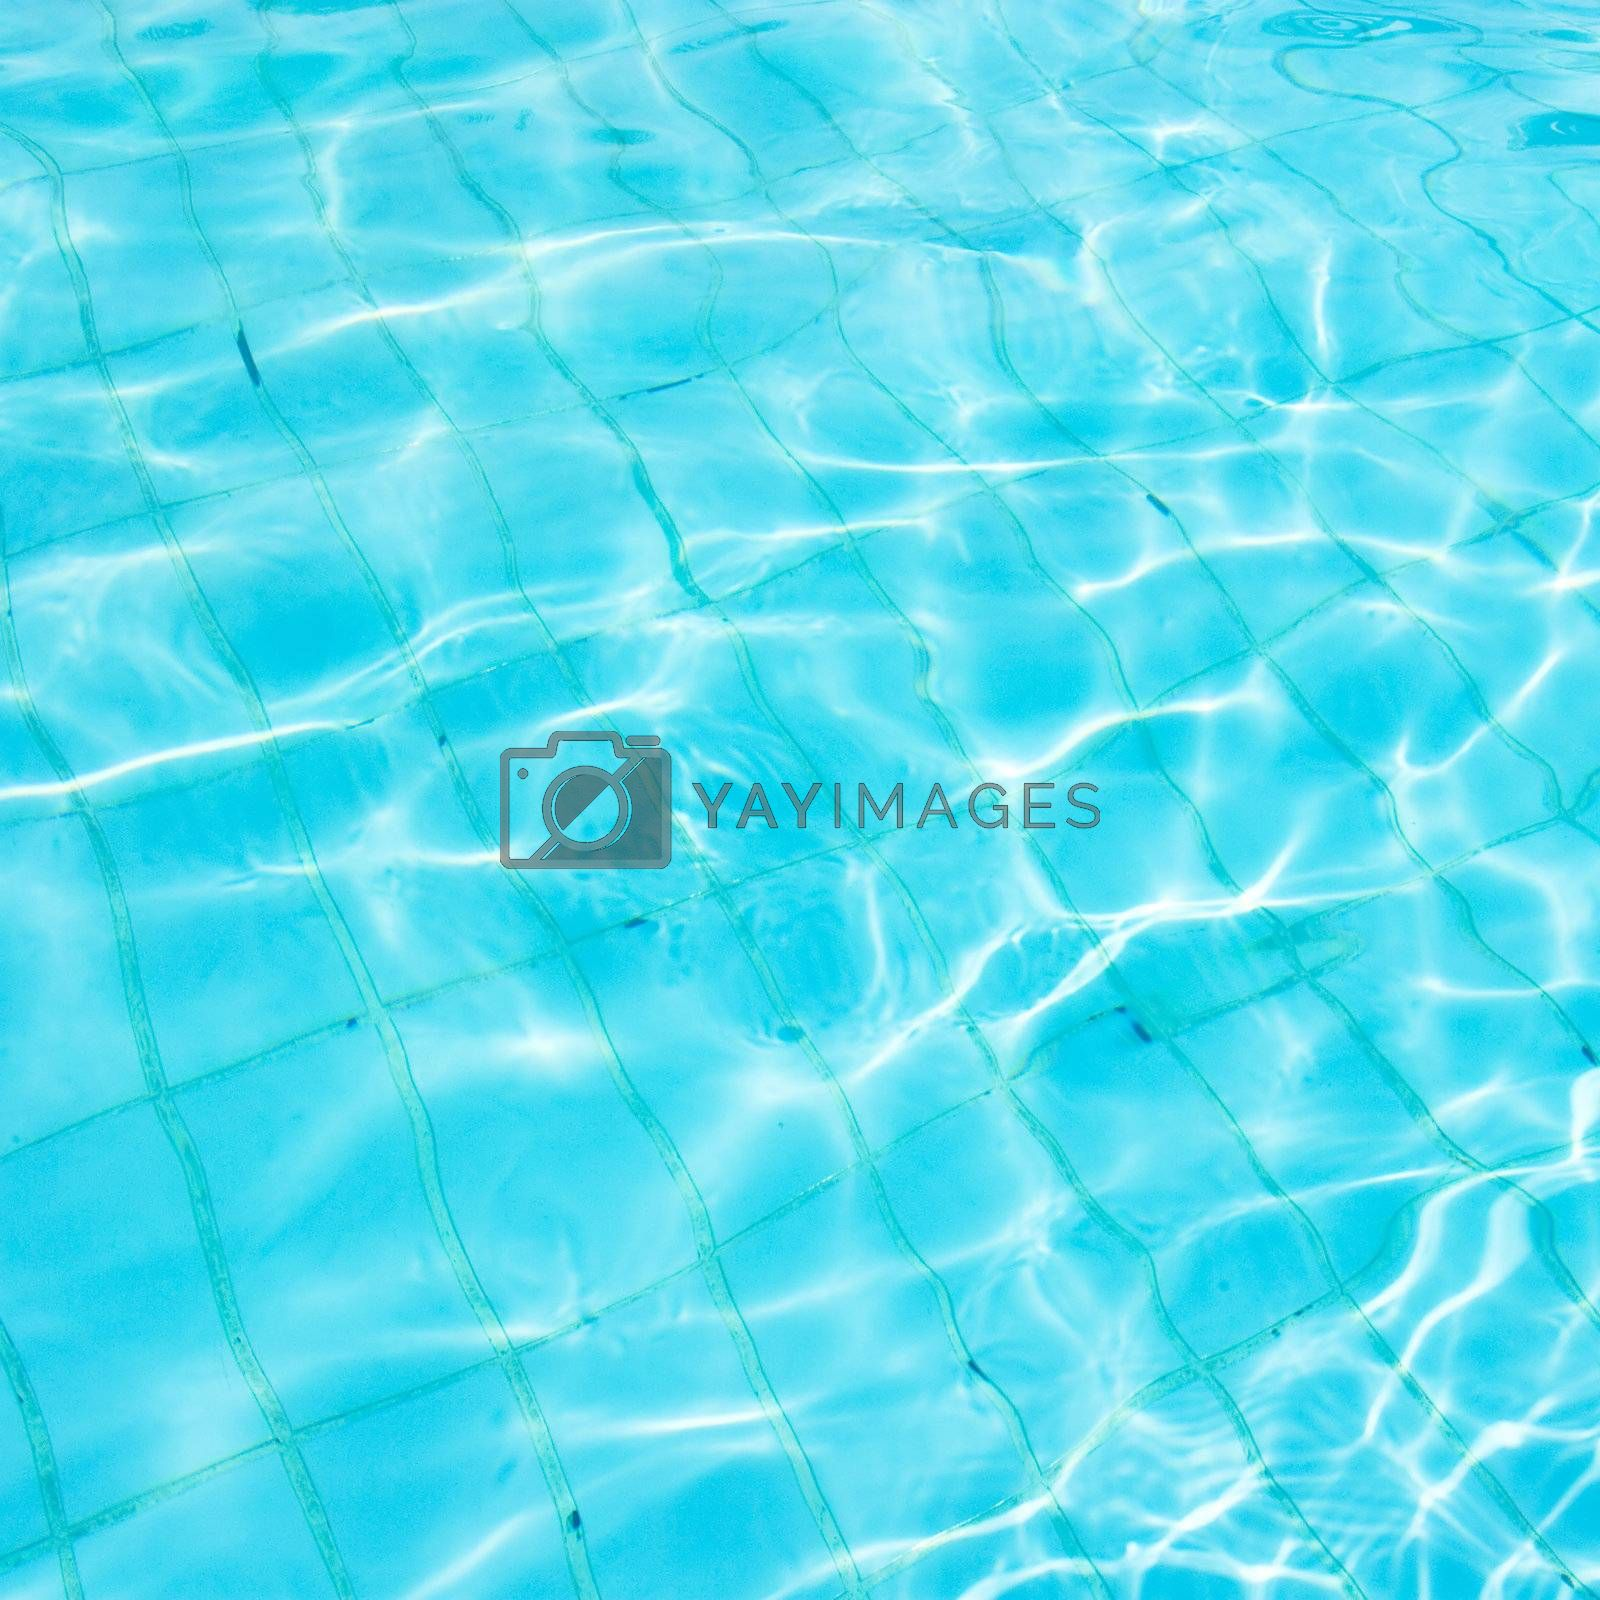 Royalty free image of Water Surface by ajn